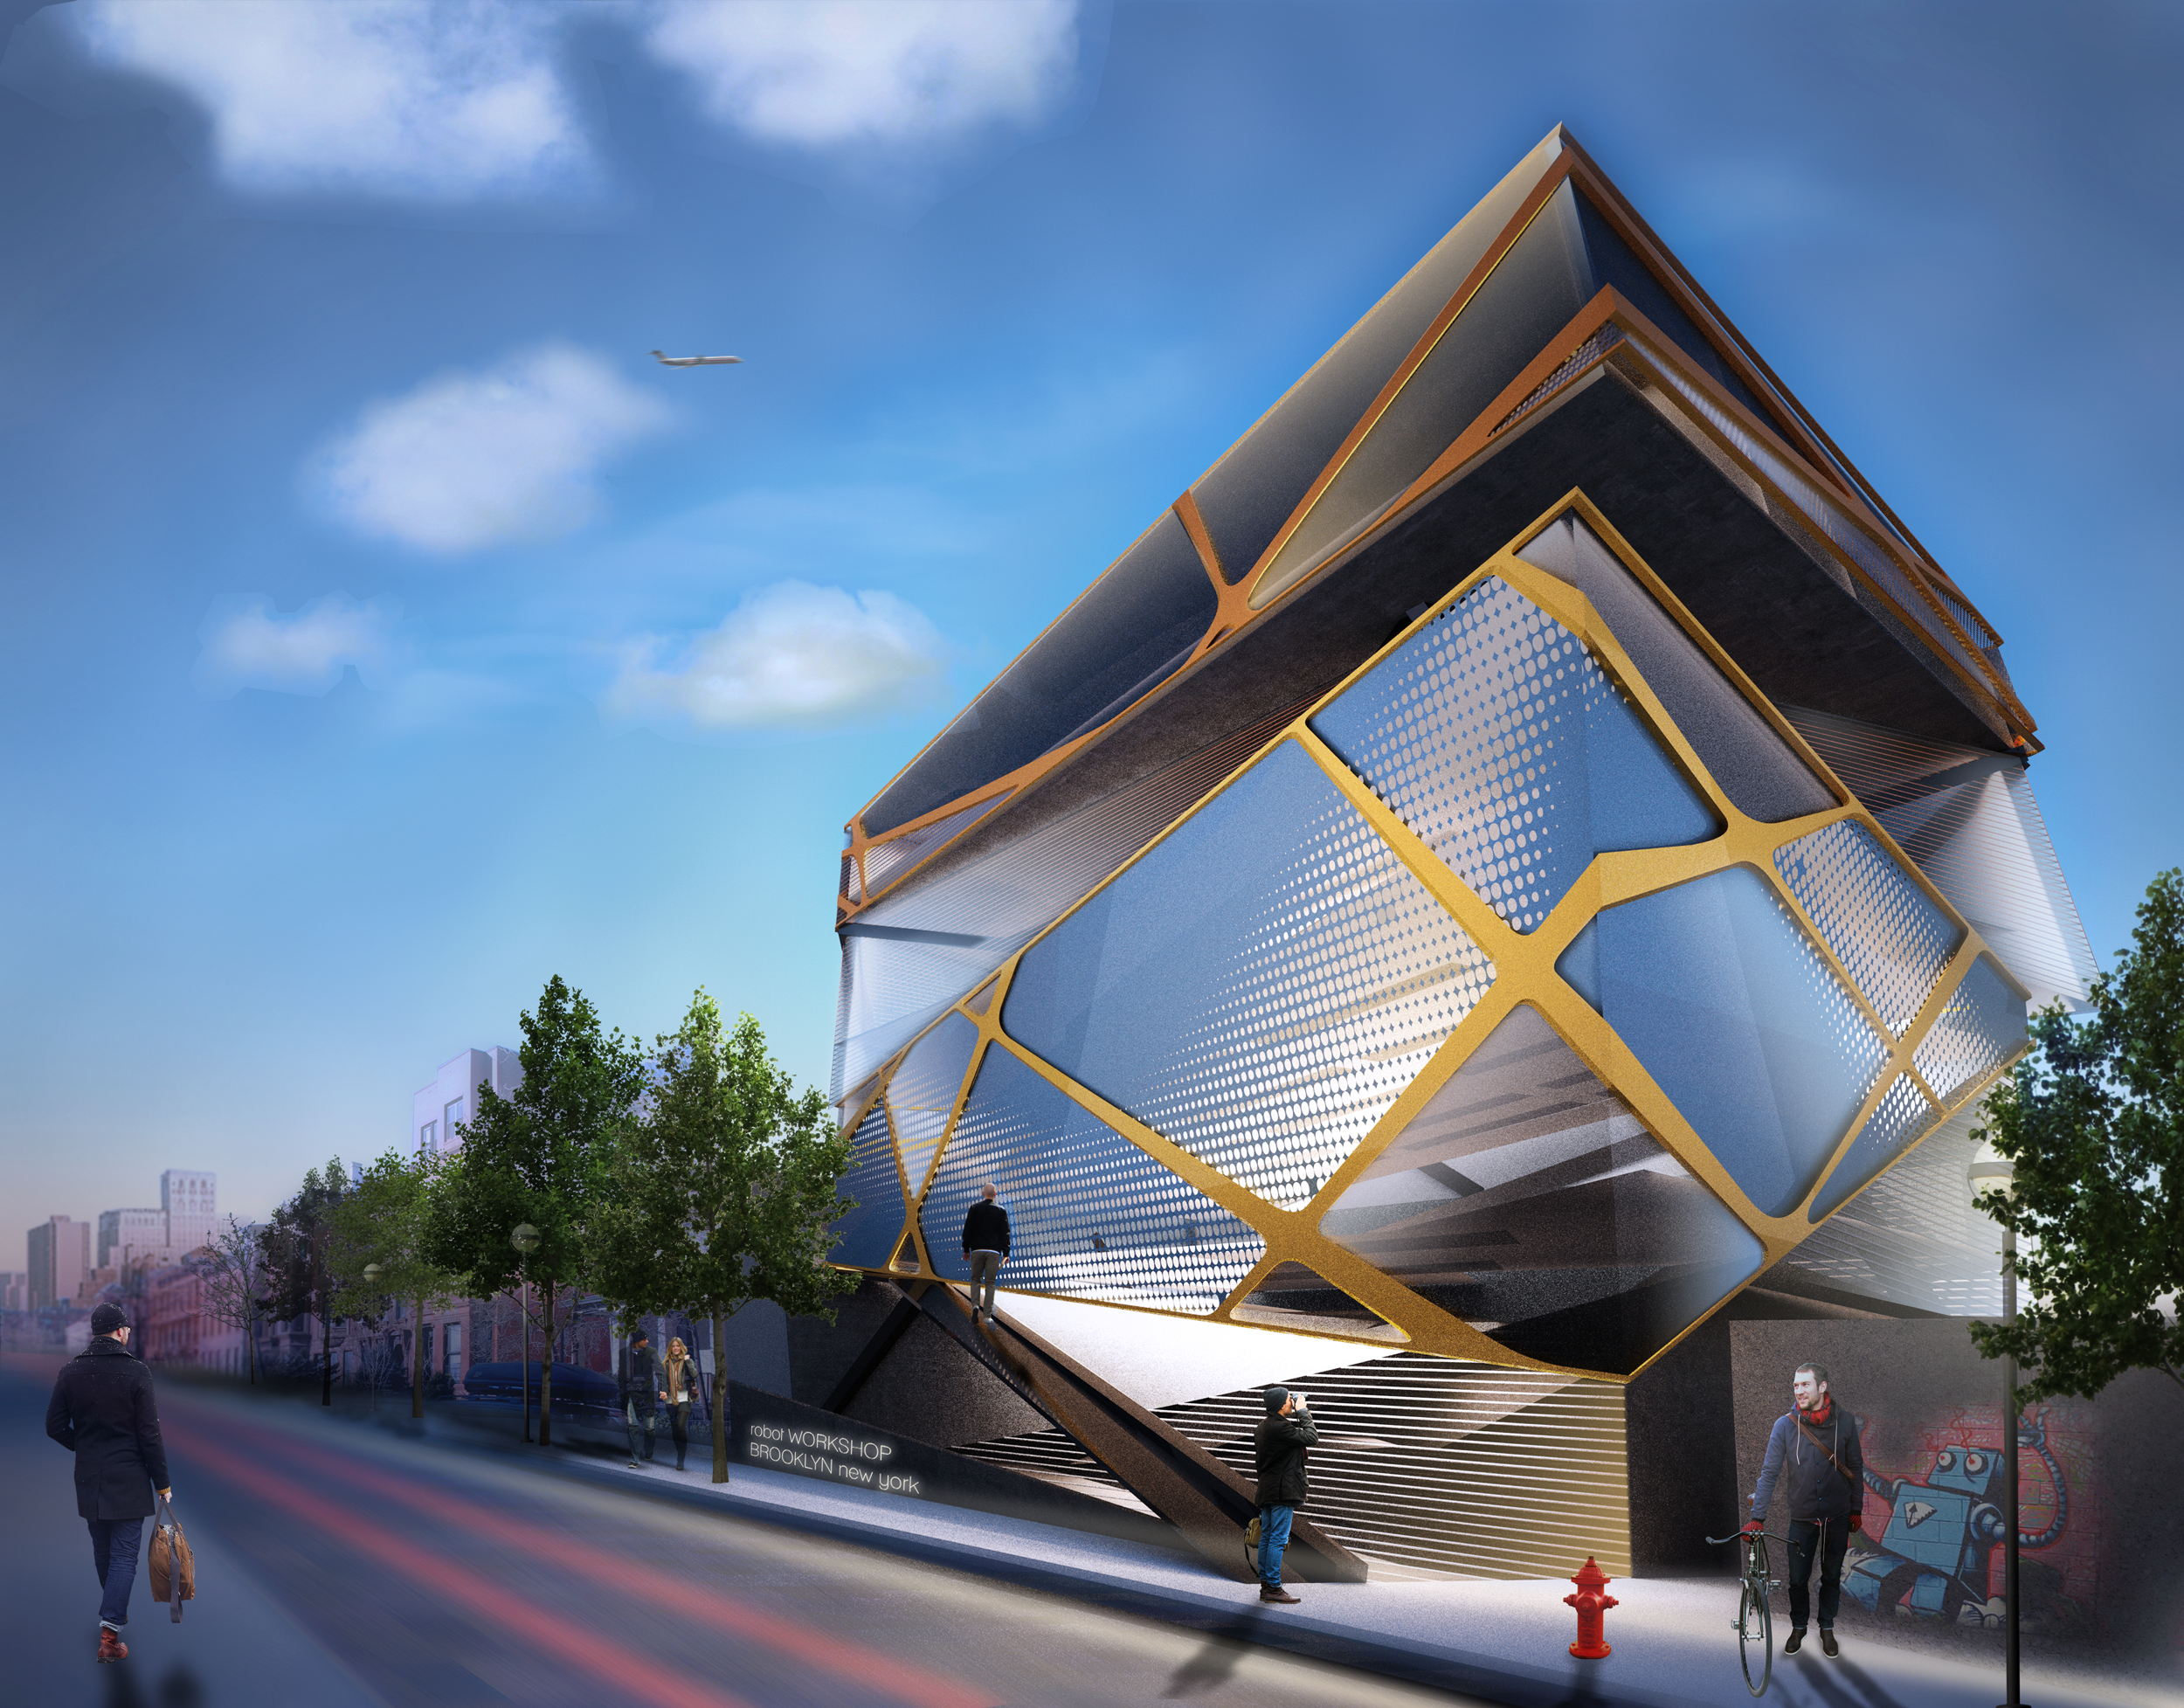 Brooklyn Robotics Center - an architectural competitionSuckerPunch, 2012, in collaboration with Michael Haas